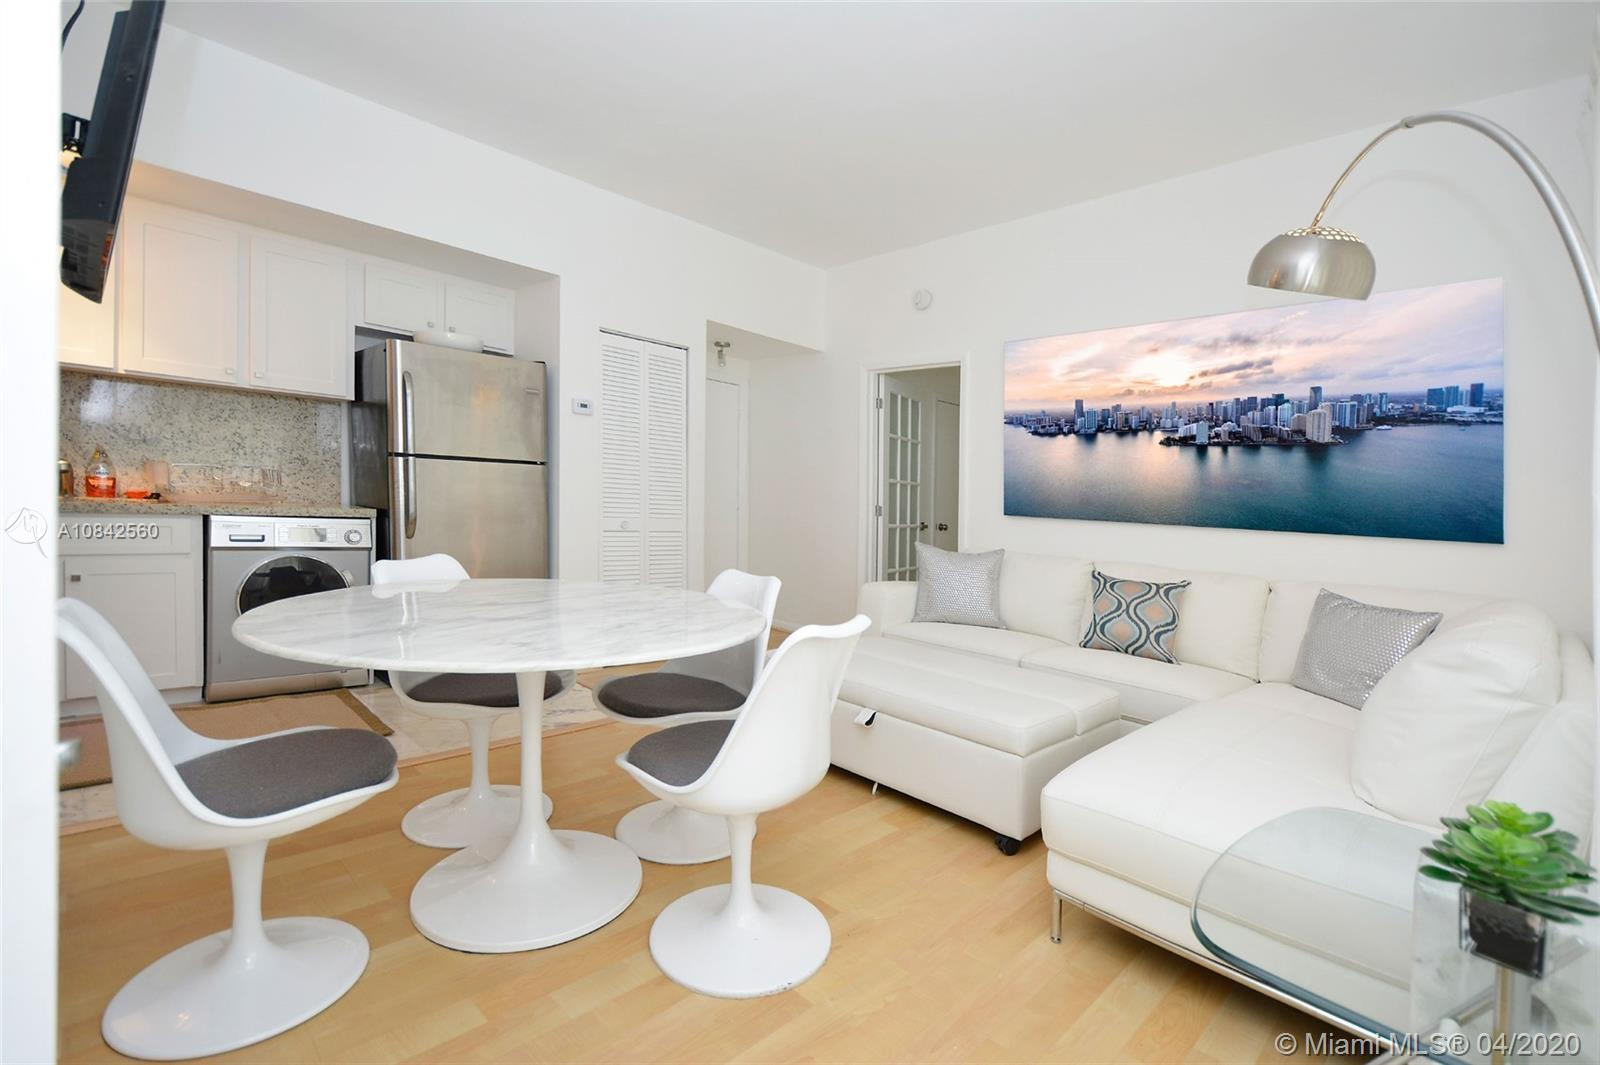 Perfect renovated 2 Bed / 2 Bath unit in the heart of South Beach. This a corner unit with large win